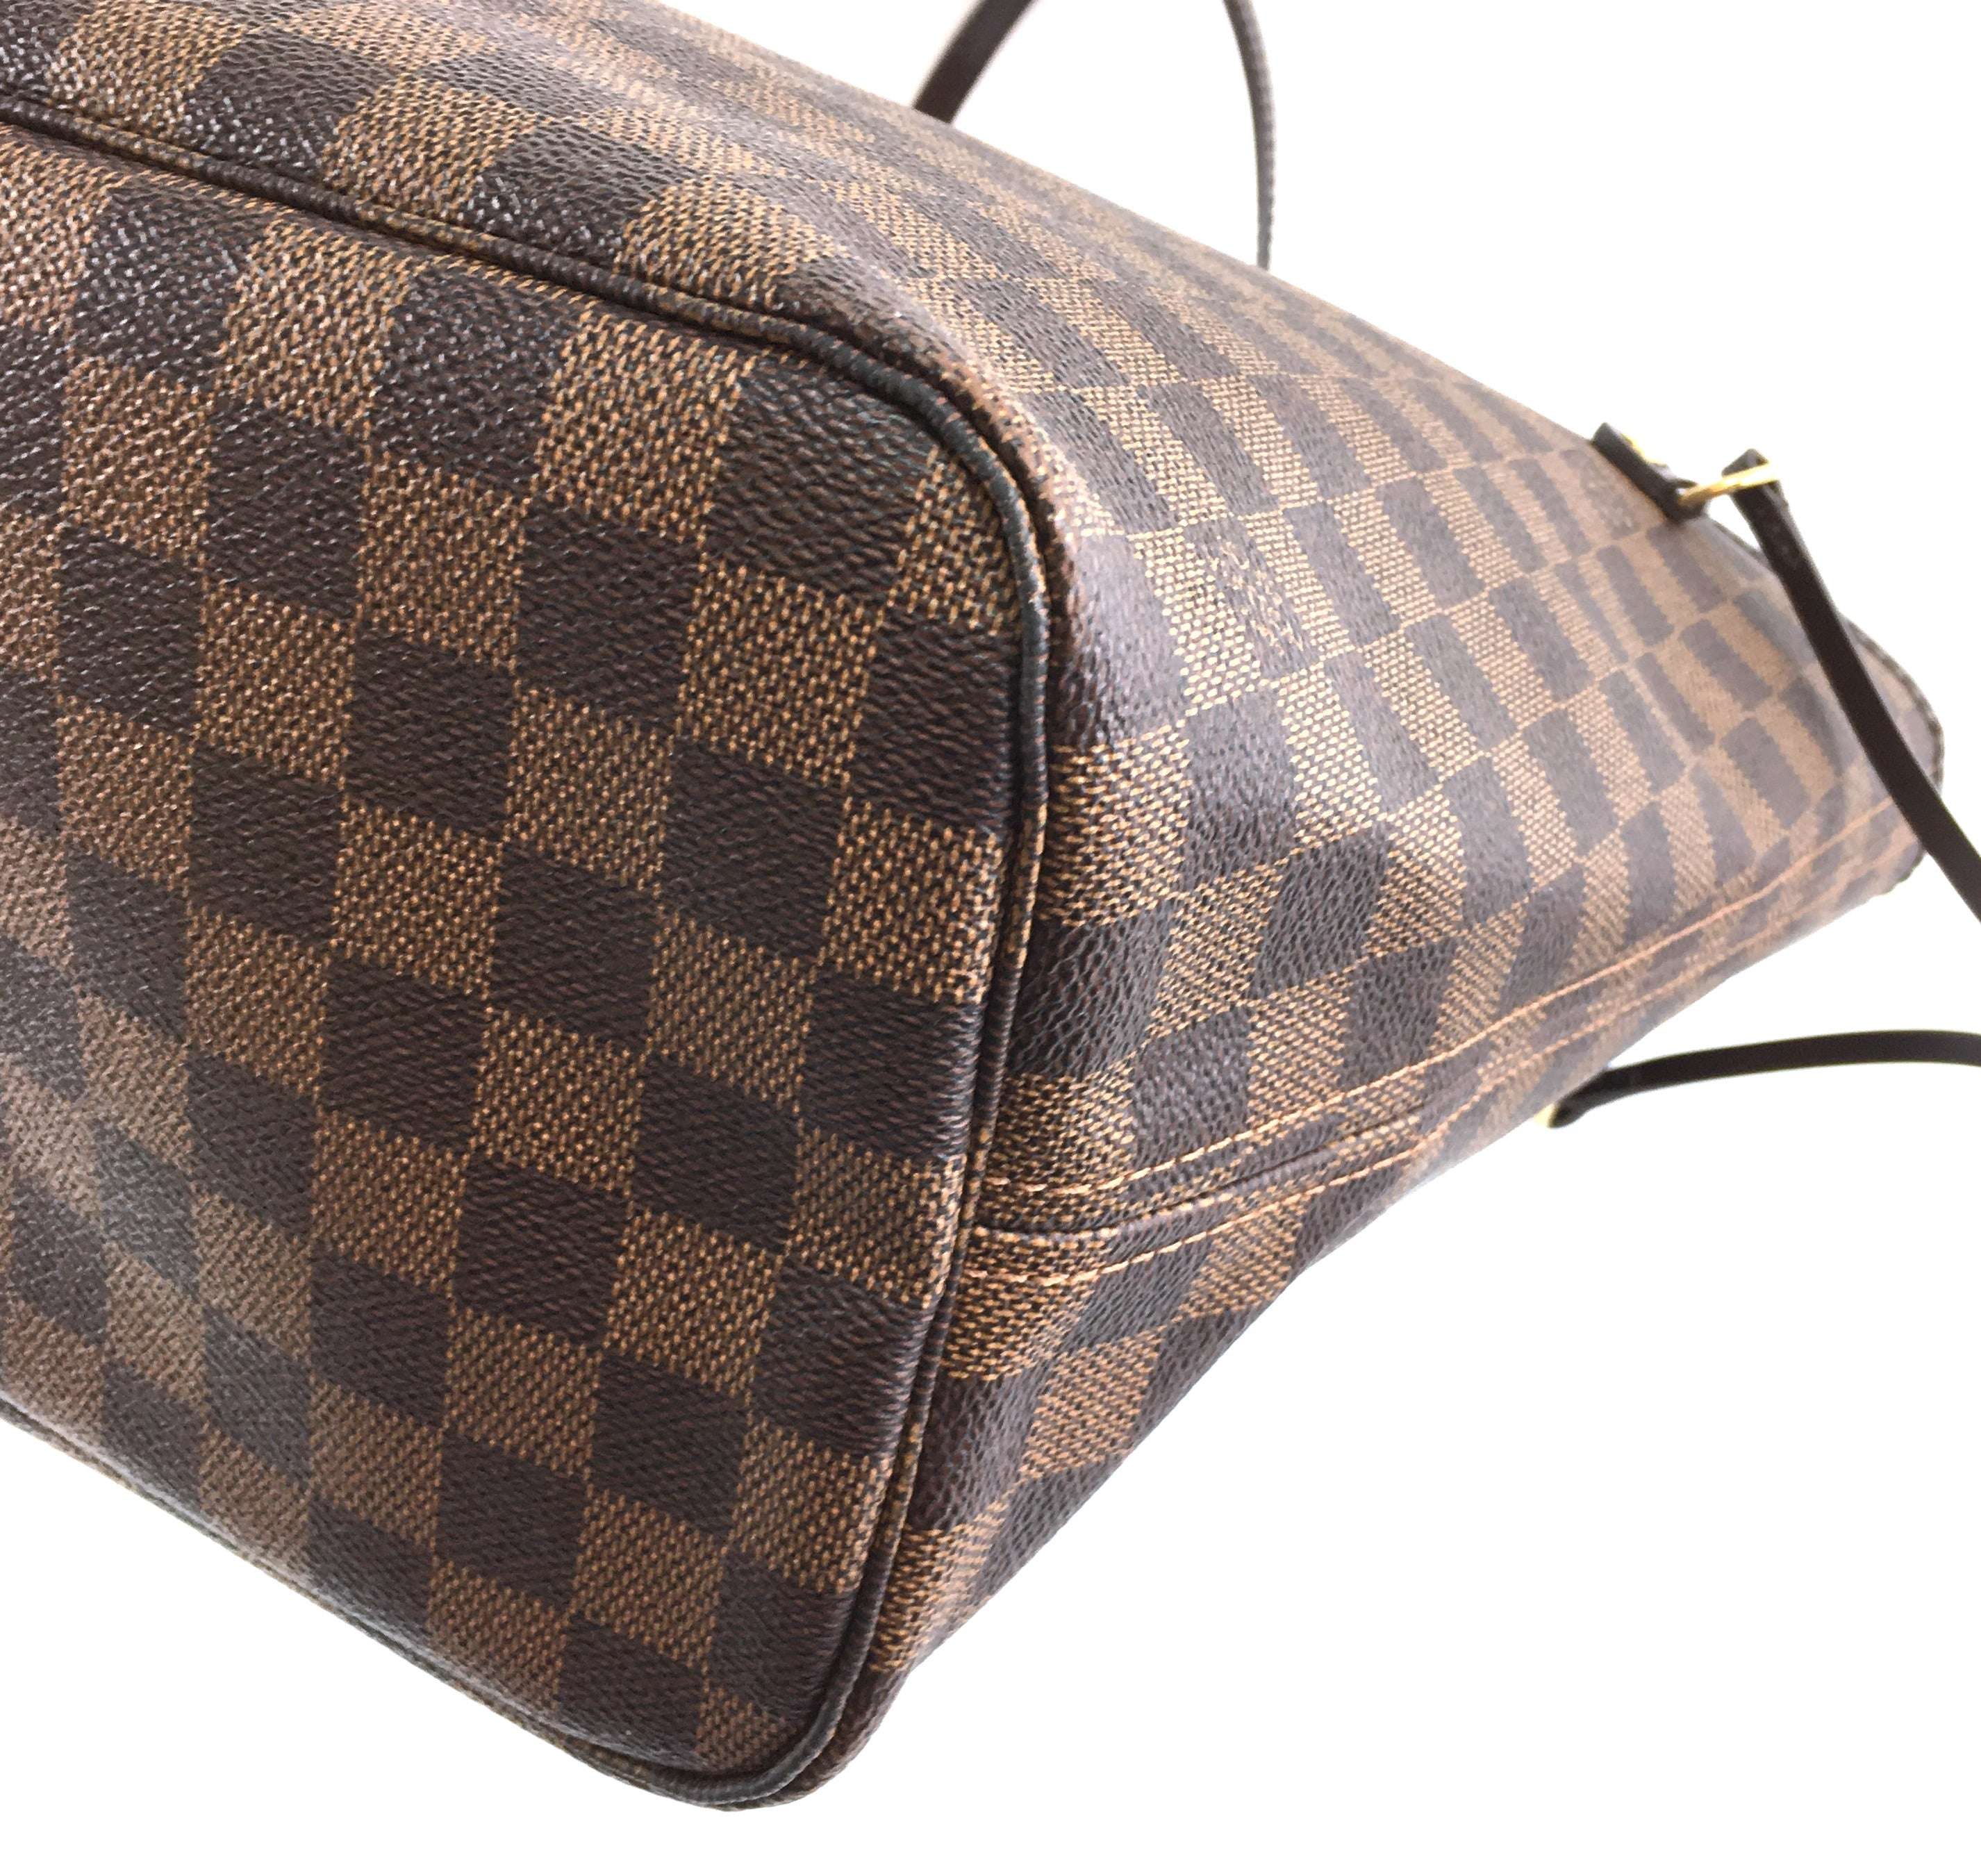 Louis Vuitton Neverfull MM Damier Ébène Canvas